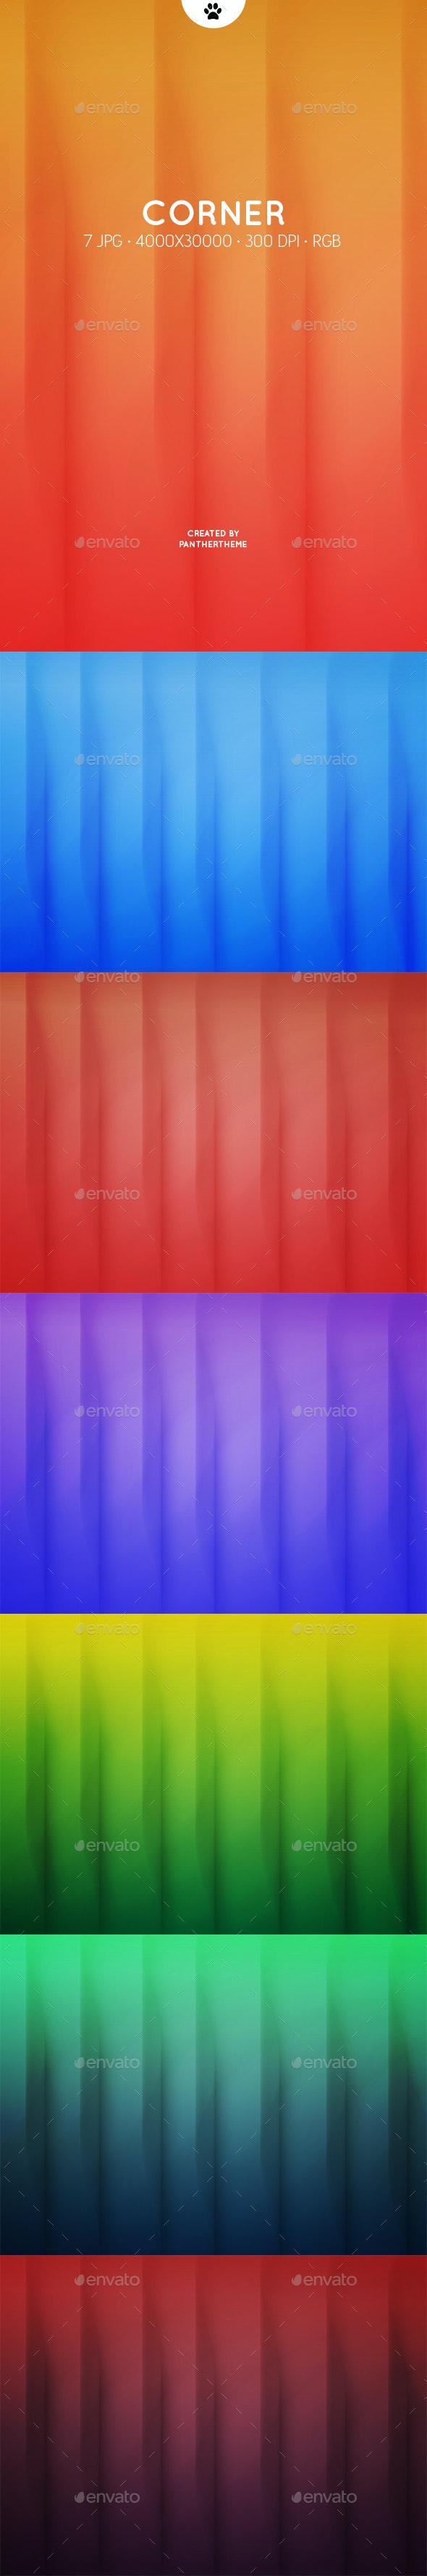 Corner Shadows Backgrounds - Abstract Backgrounds